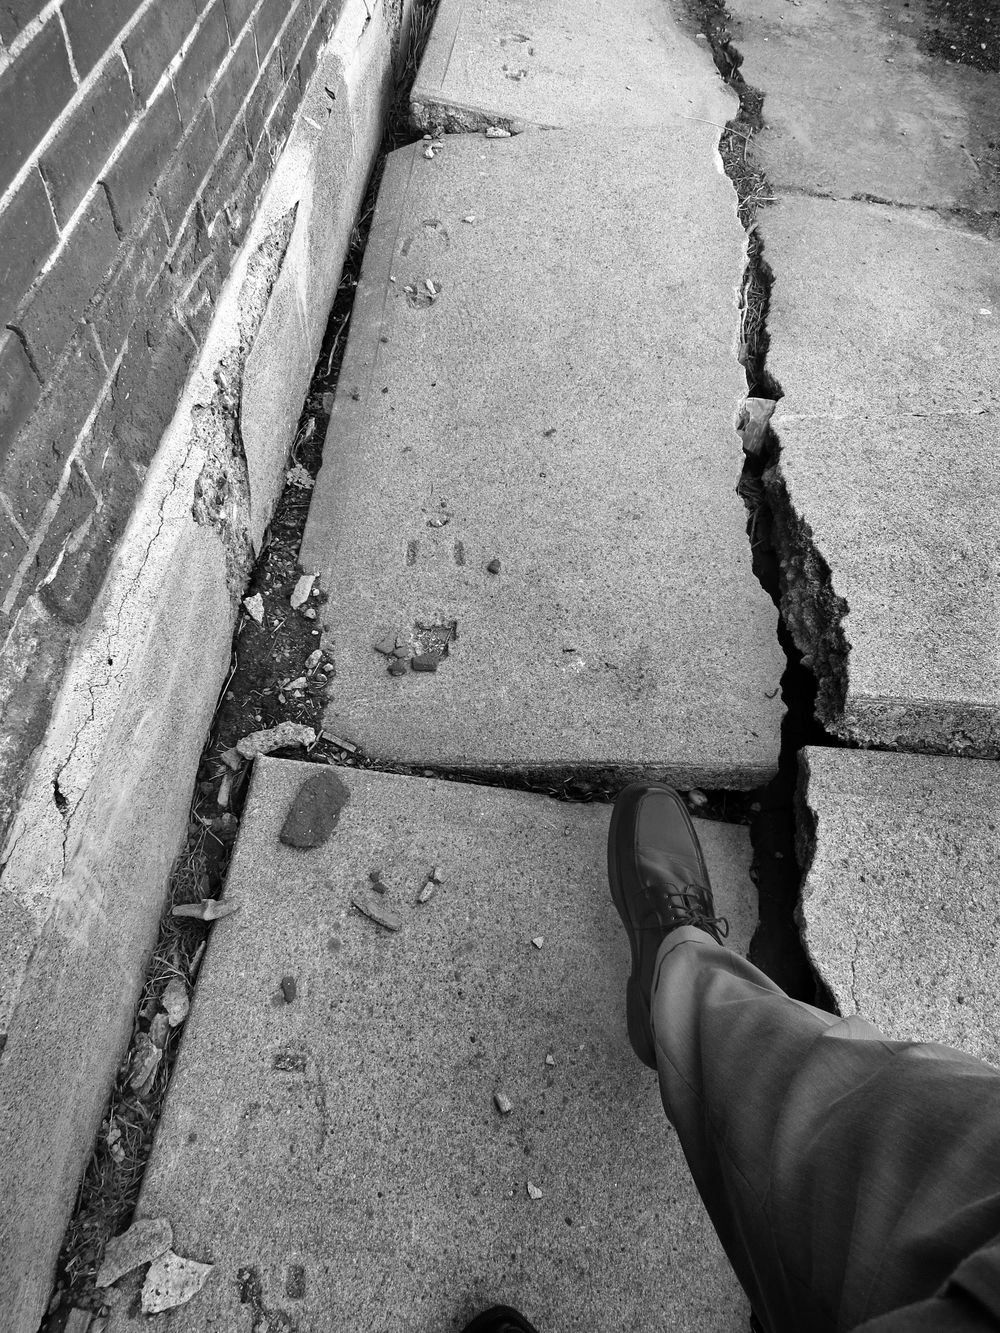 A first person view of a pedestrian walking on a cracked sidewalk